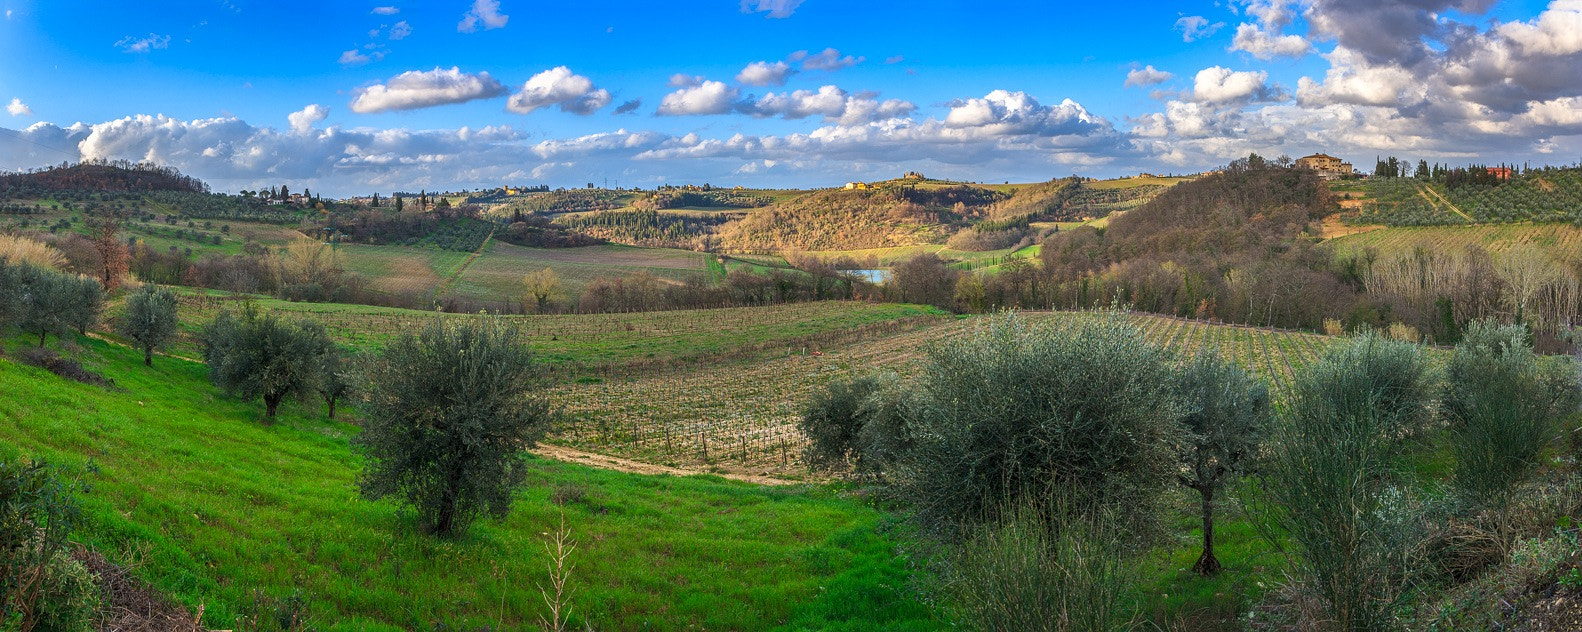 Photograph Landscape of Tuscany. by Joan Santaugini on 500px